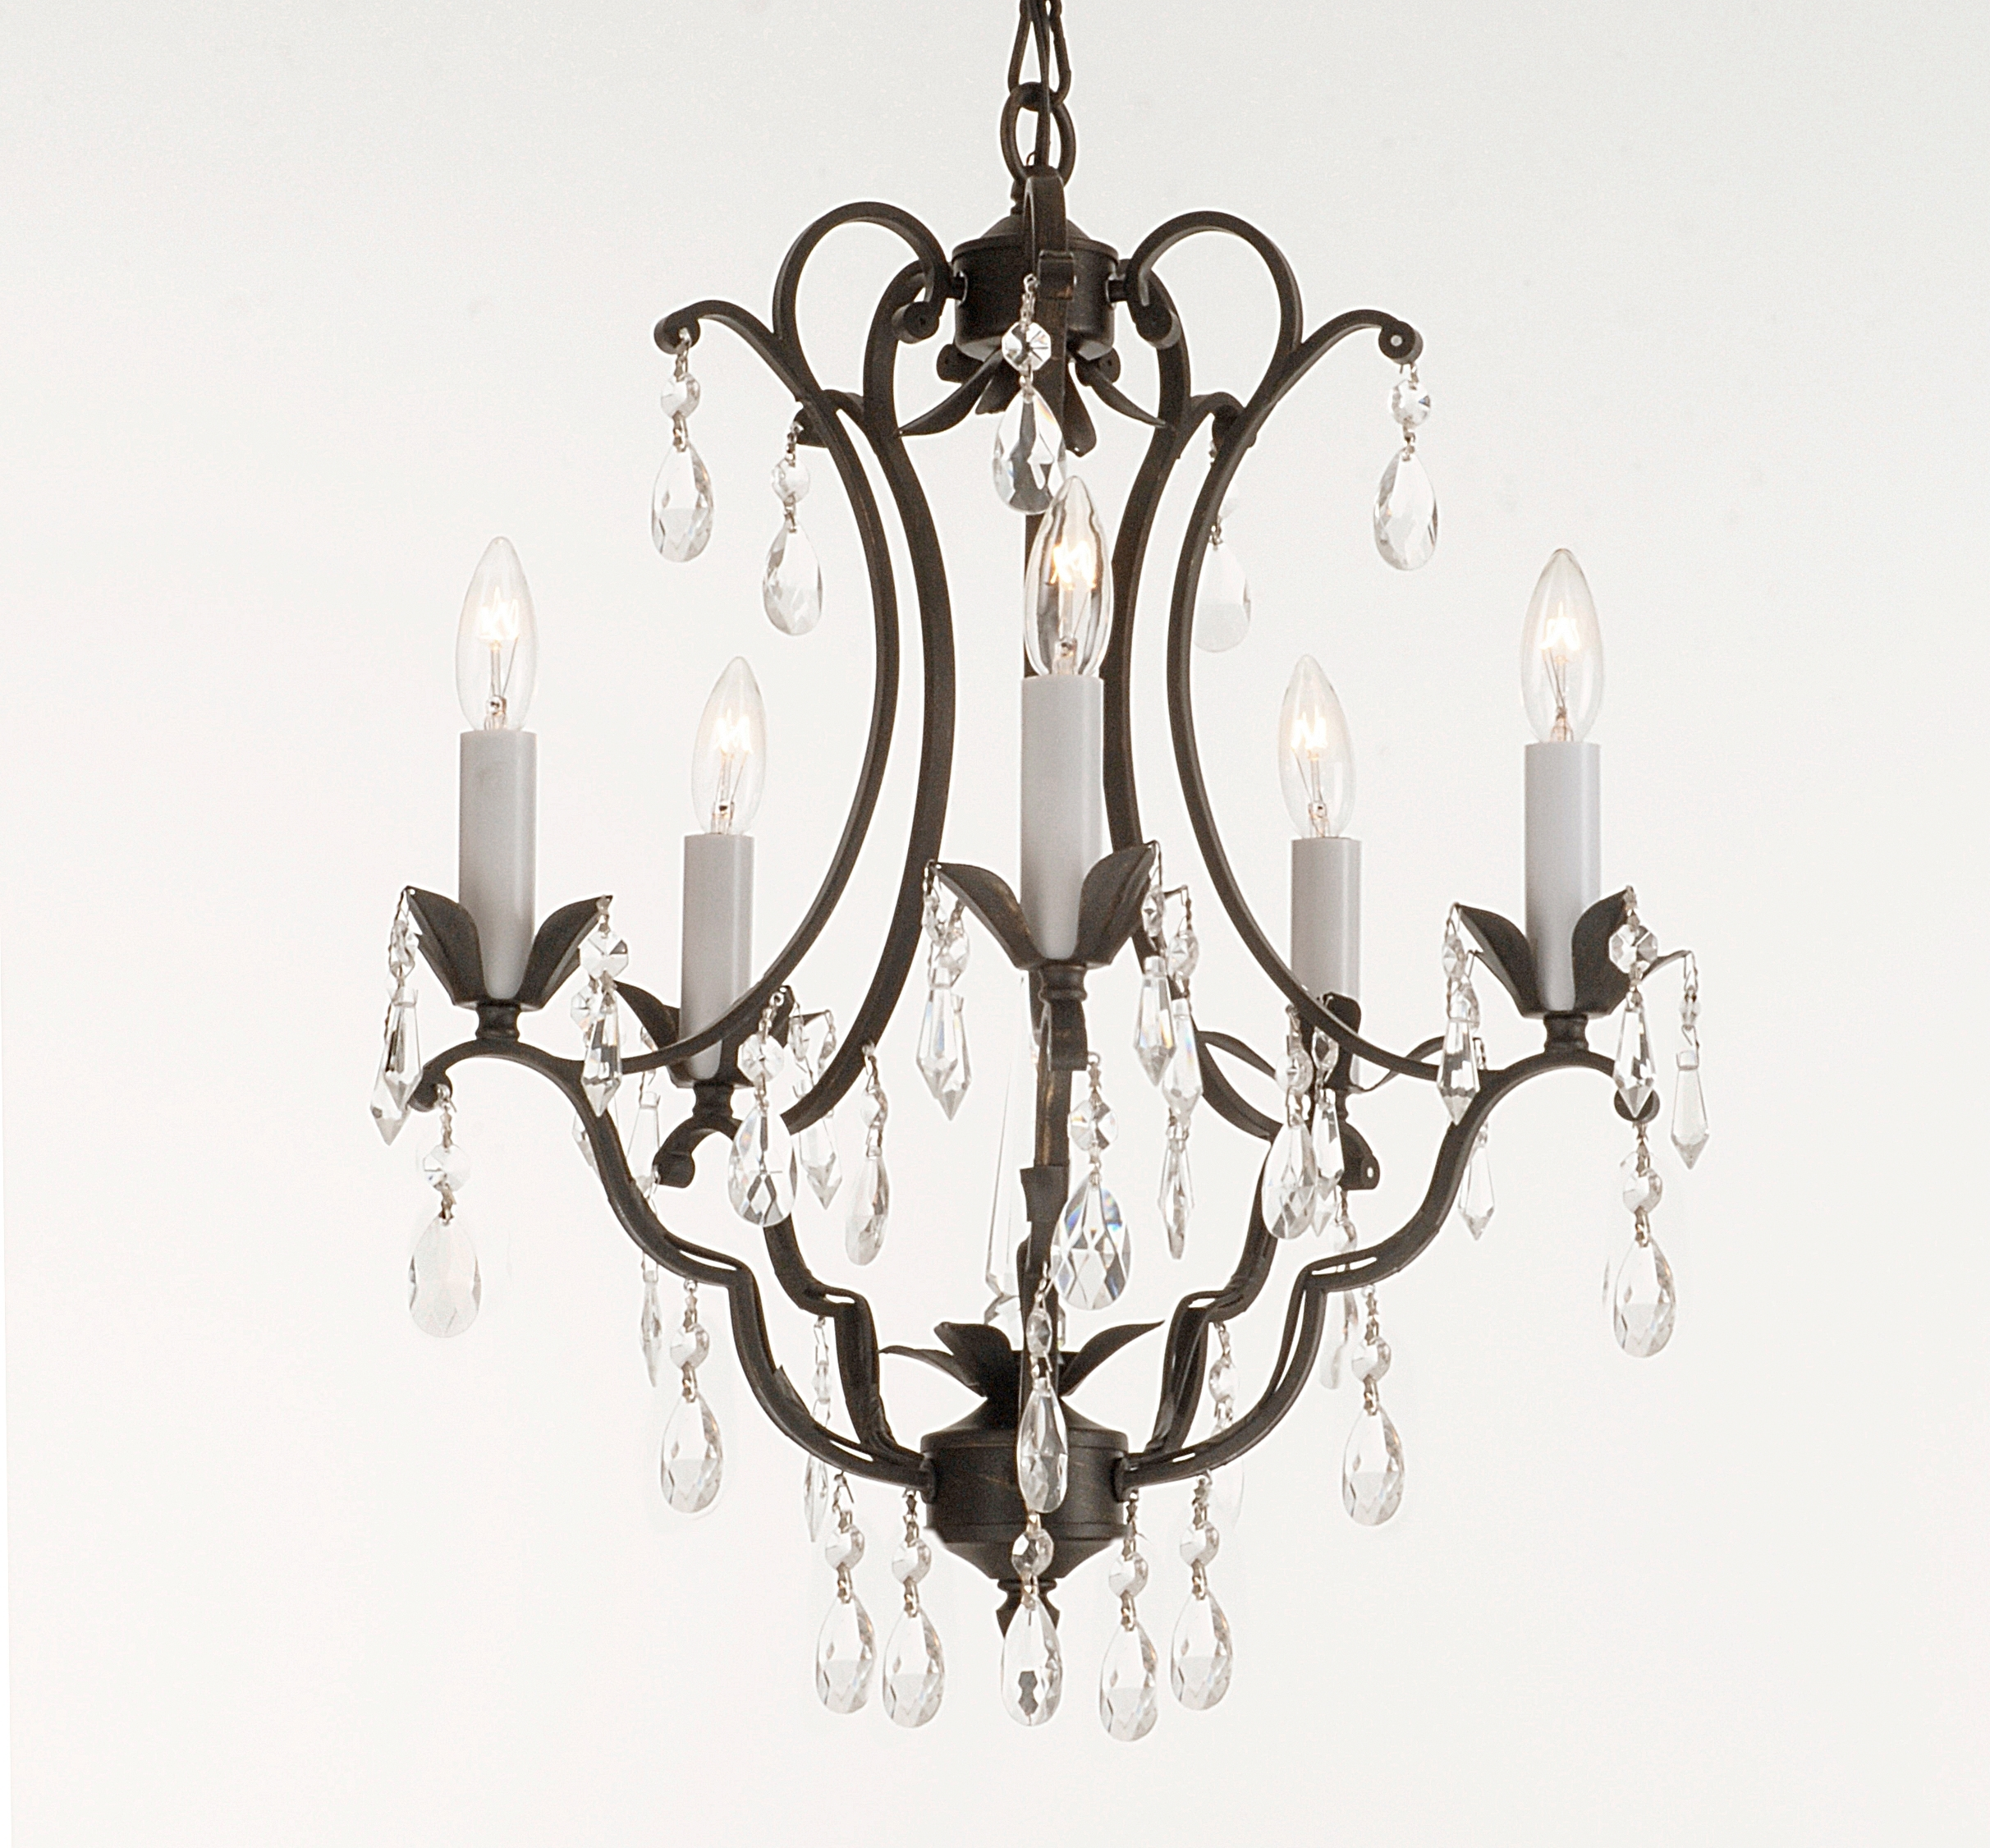 Vintage Black Chandelier With Fashionable Light : Furniture Vintage Look Modern Black Wrought Iron Chandeliers (Gallery 11 of 15)